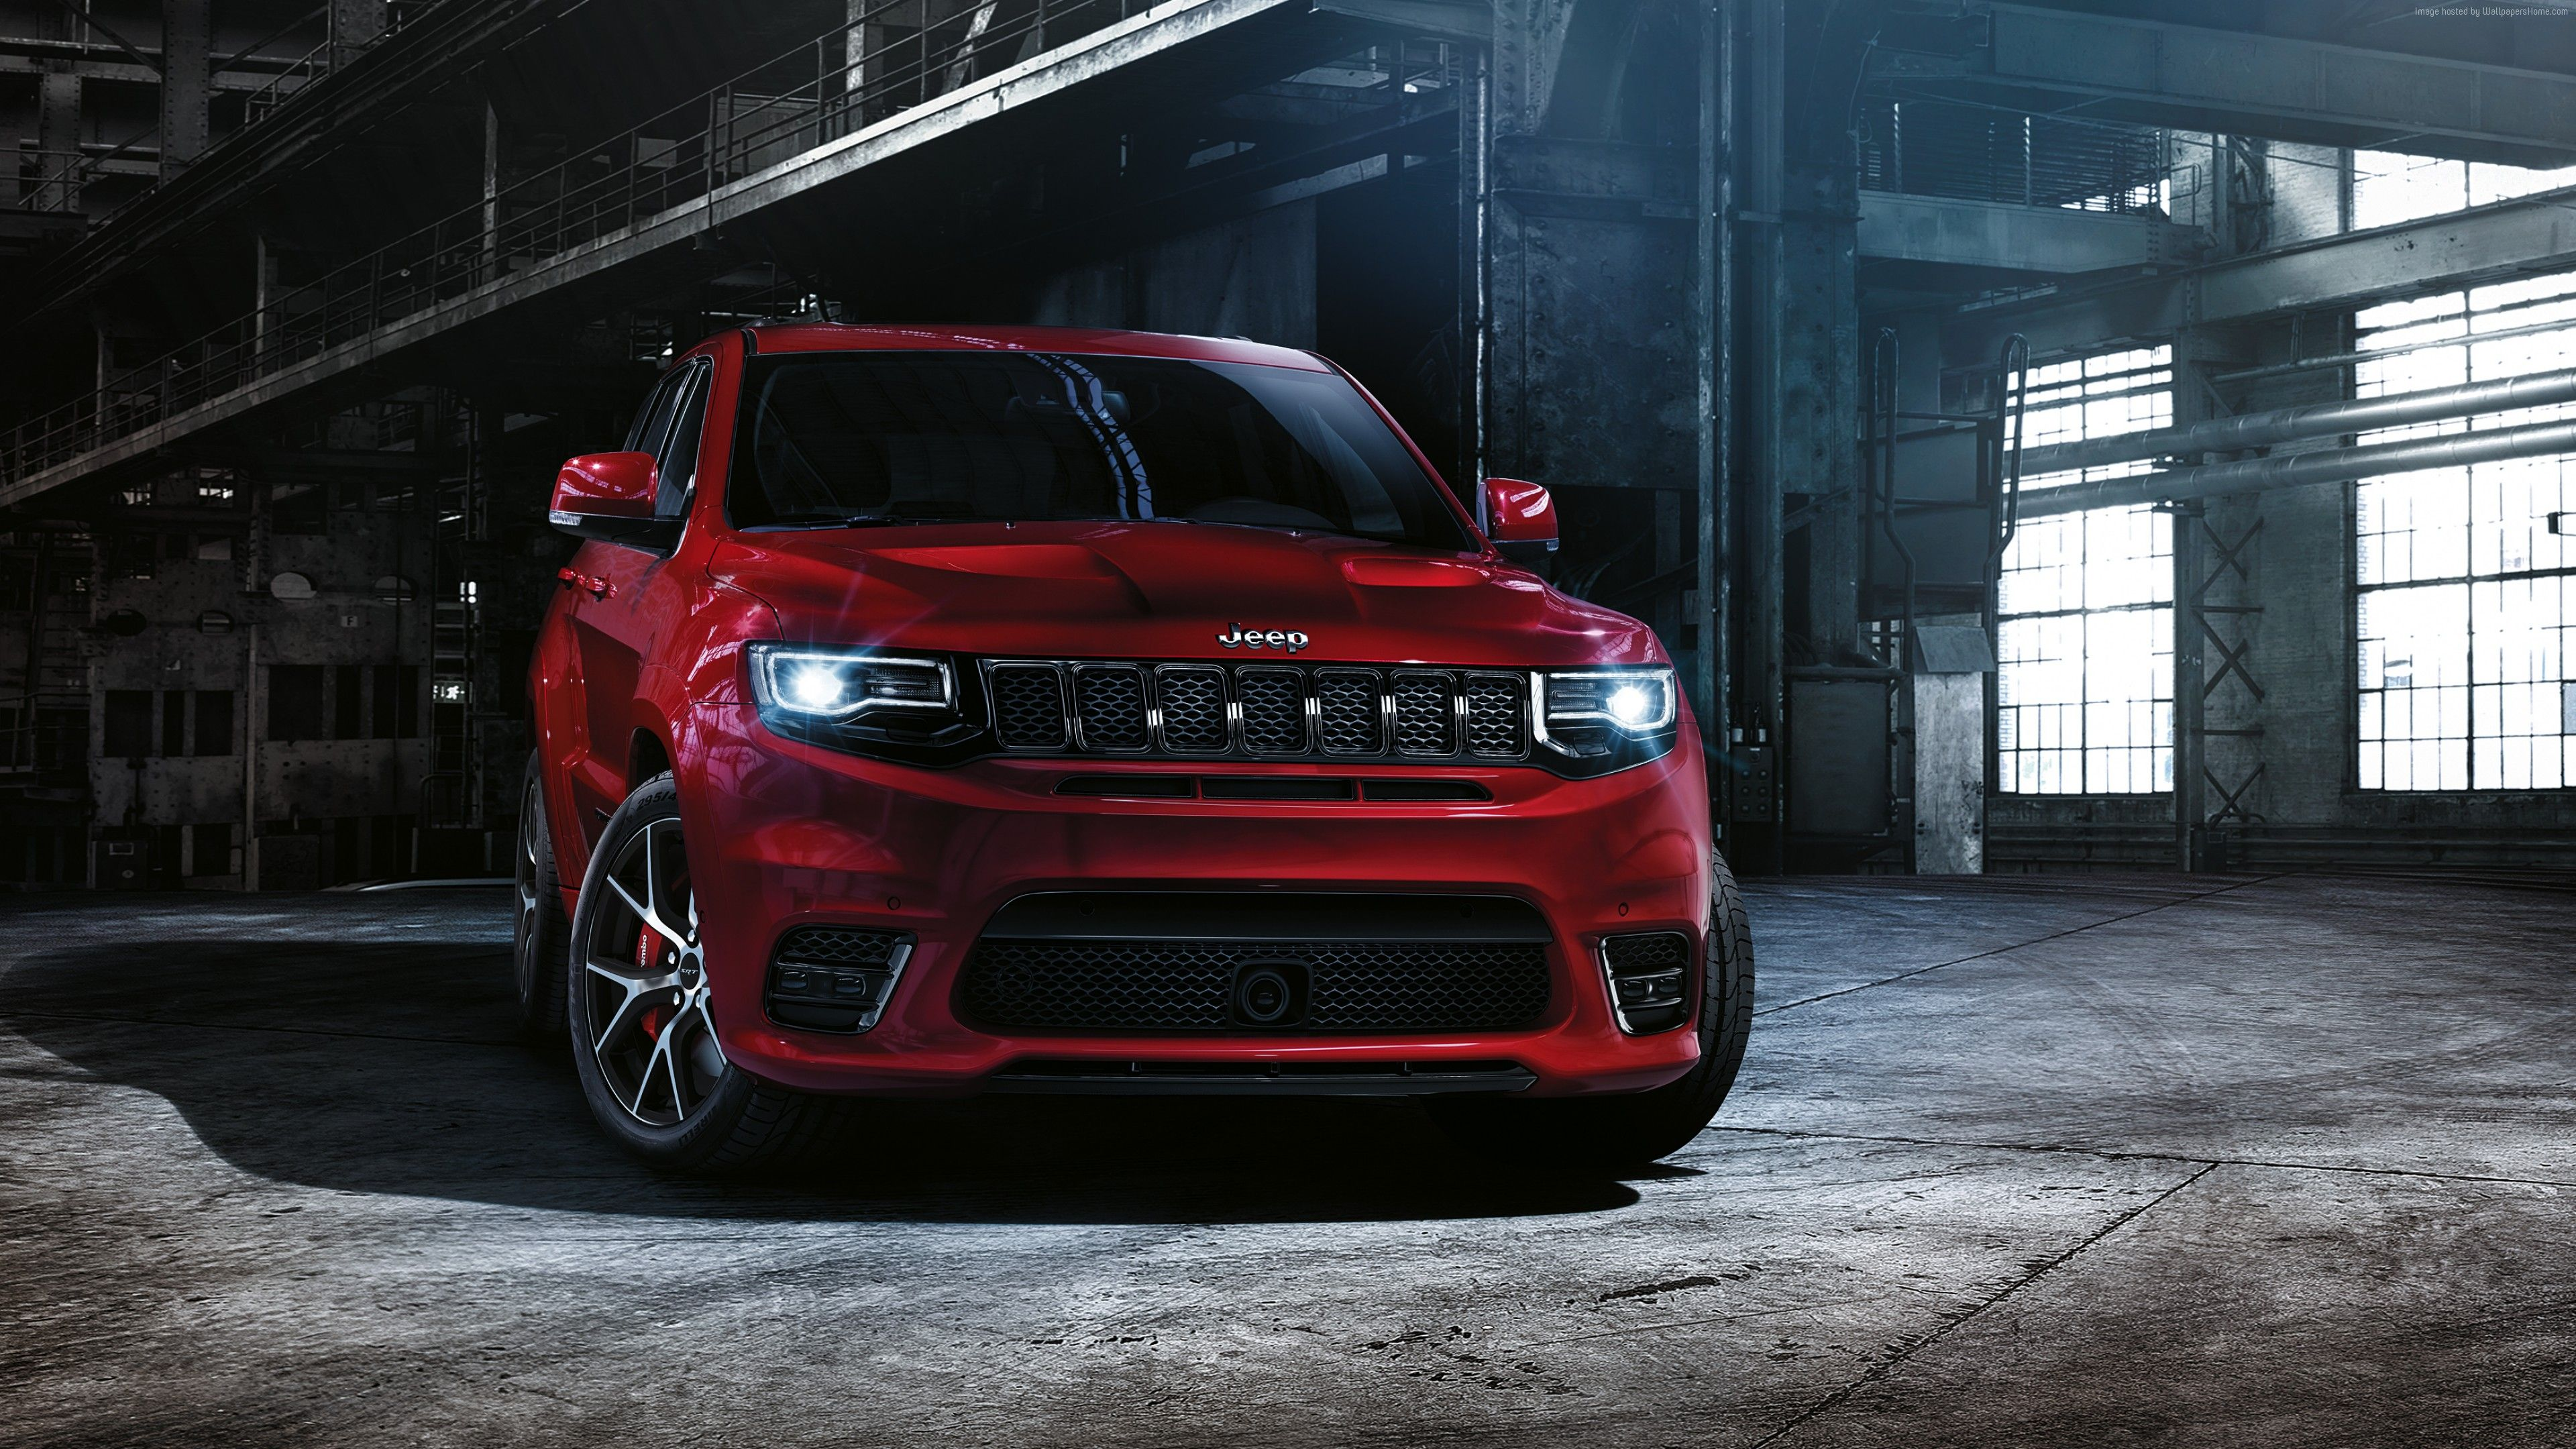 Jeep Grand Cherokee Wallpapers Wallpaper Cave